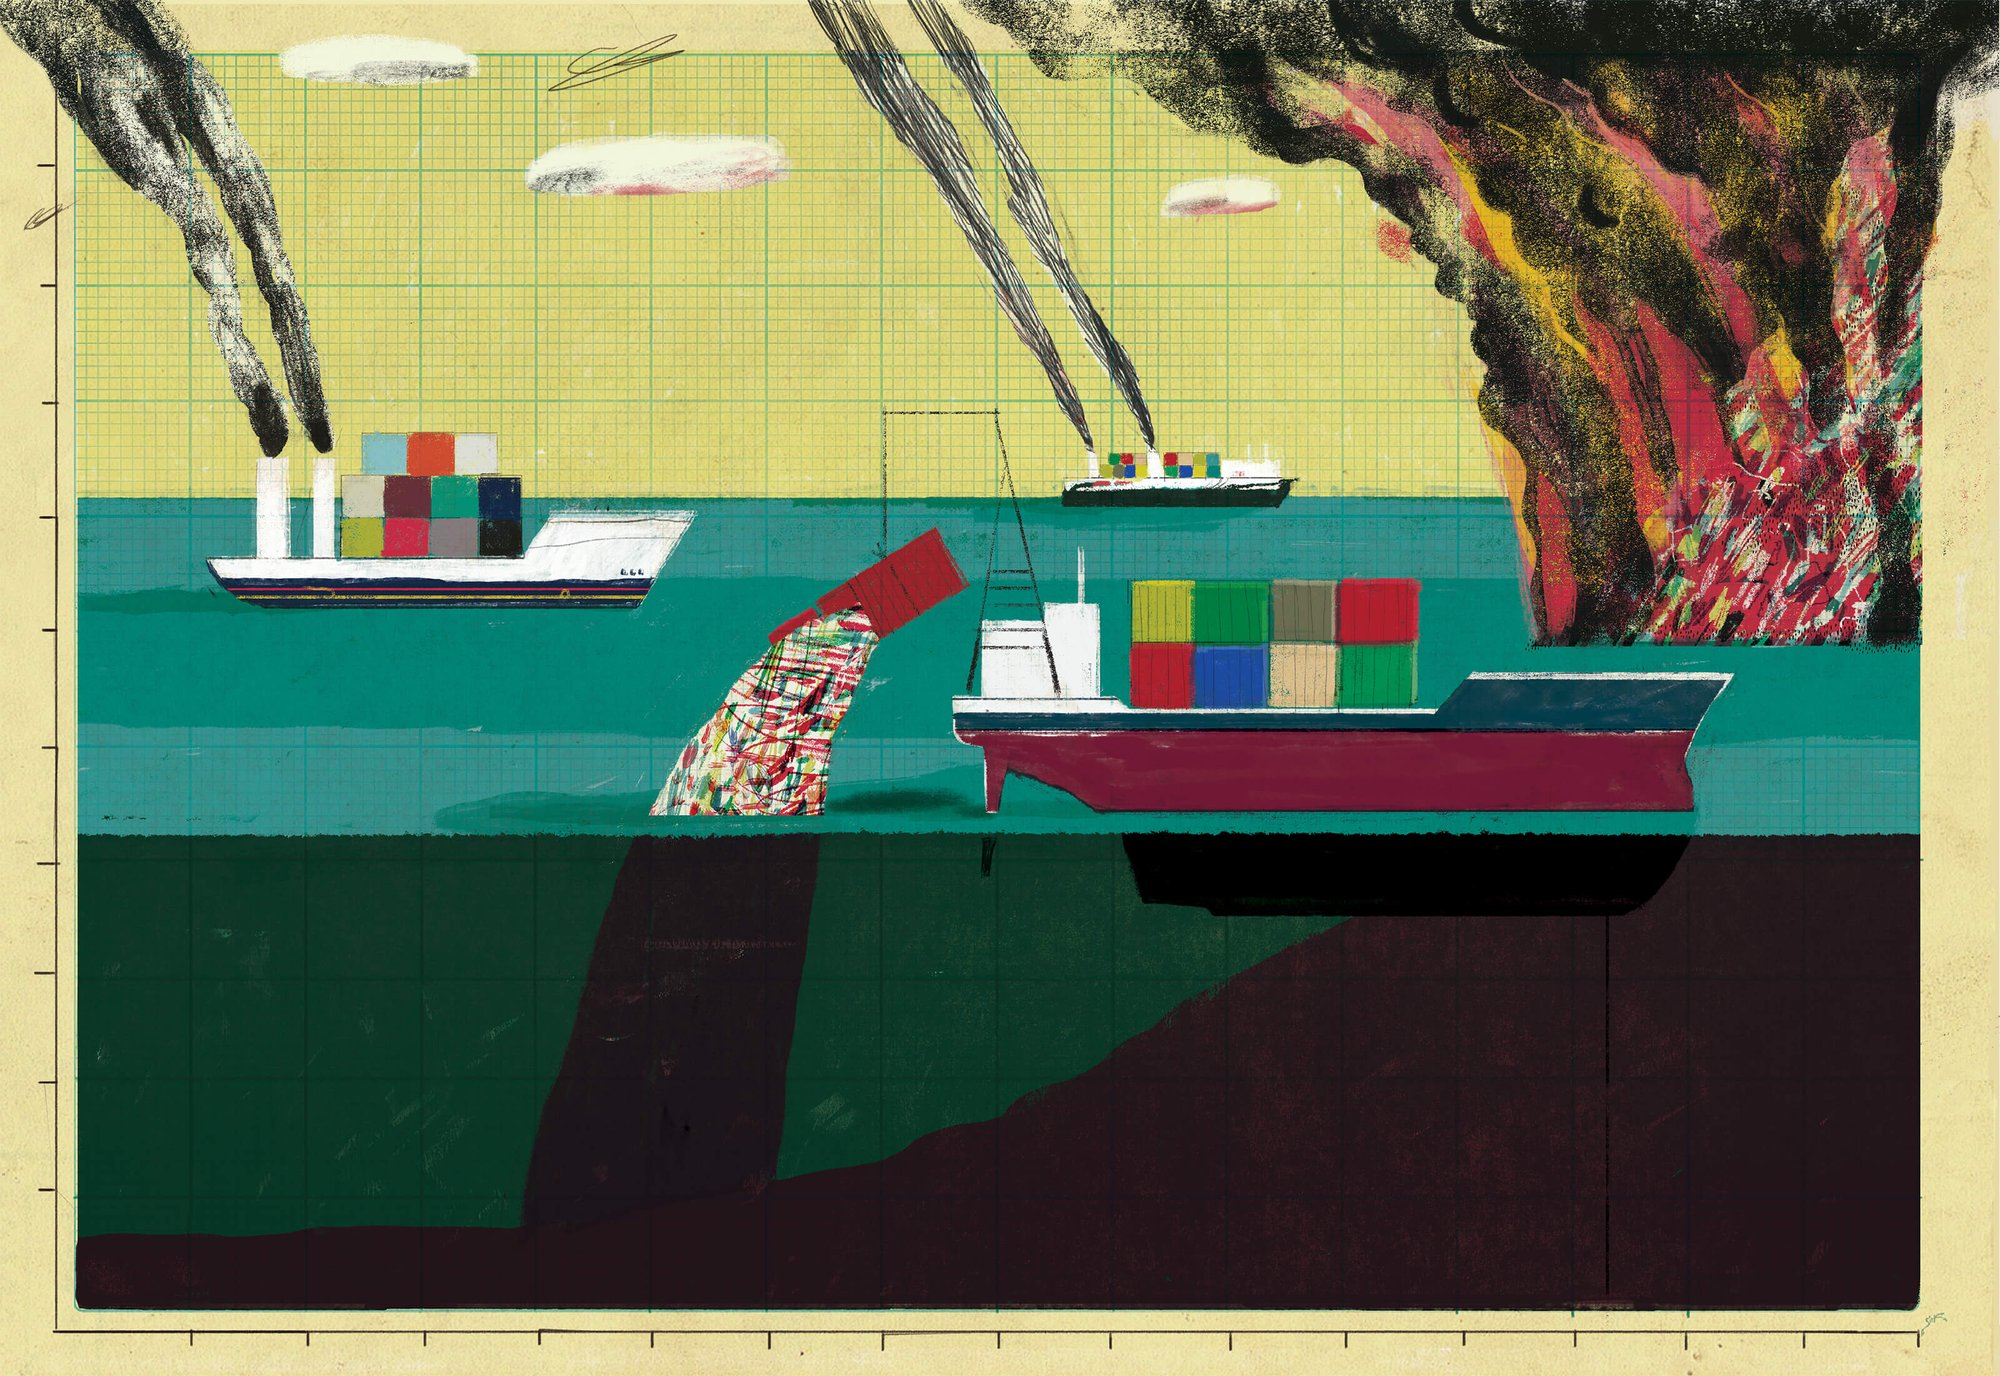 an illustration of three cargo-heavy ships dumping plastic into the coean and spouting smoke into the sky